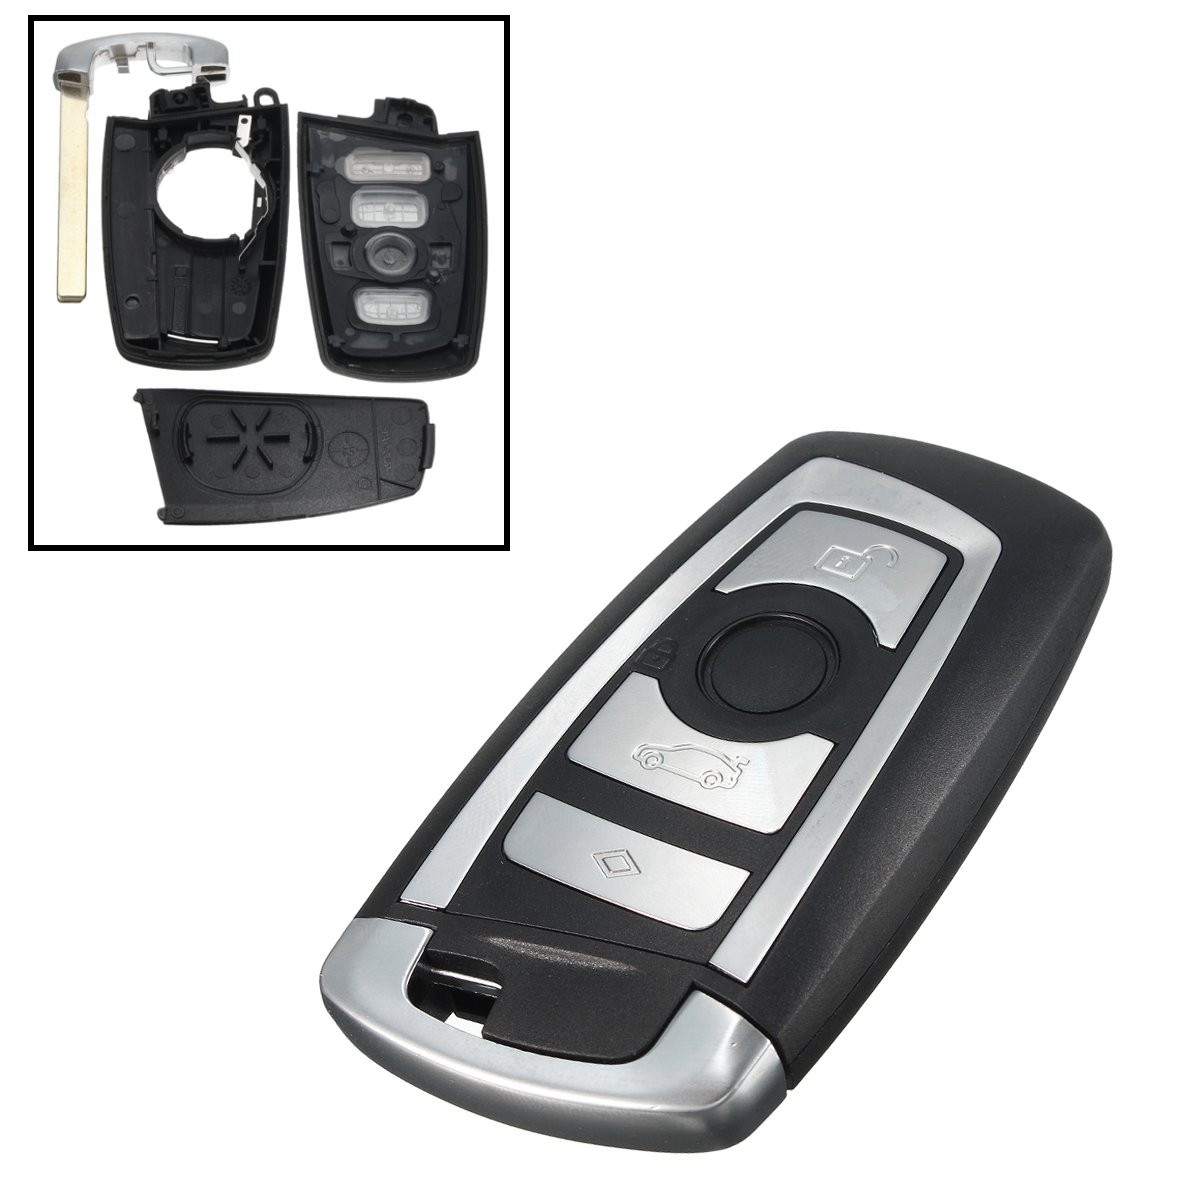 4 Botton Uncut Blade Fob Remote Key Shell Case F10 F20 F30 F40 Series For BMW 1 3 5